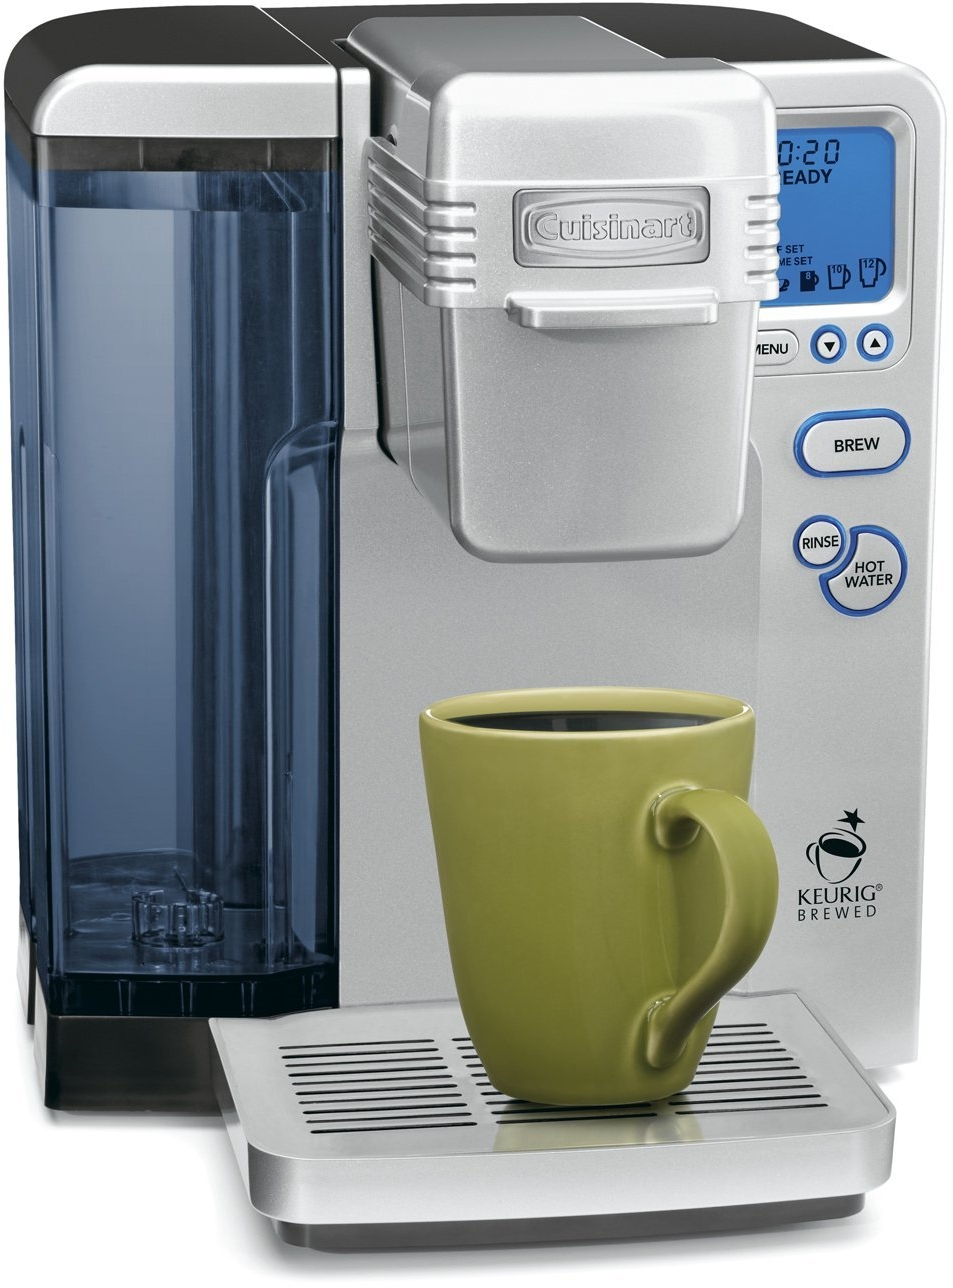 Cuisinart Single Cup Home Brewing System Designed for Keurig K-Cup Beverages